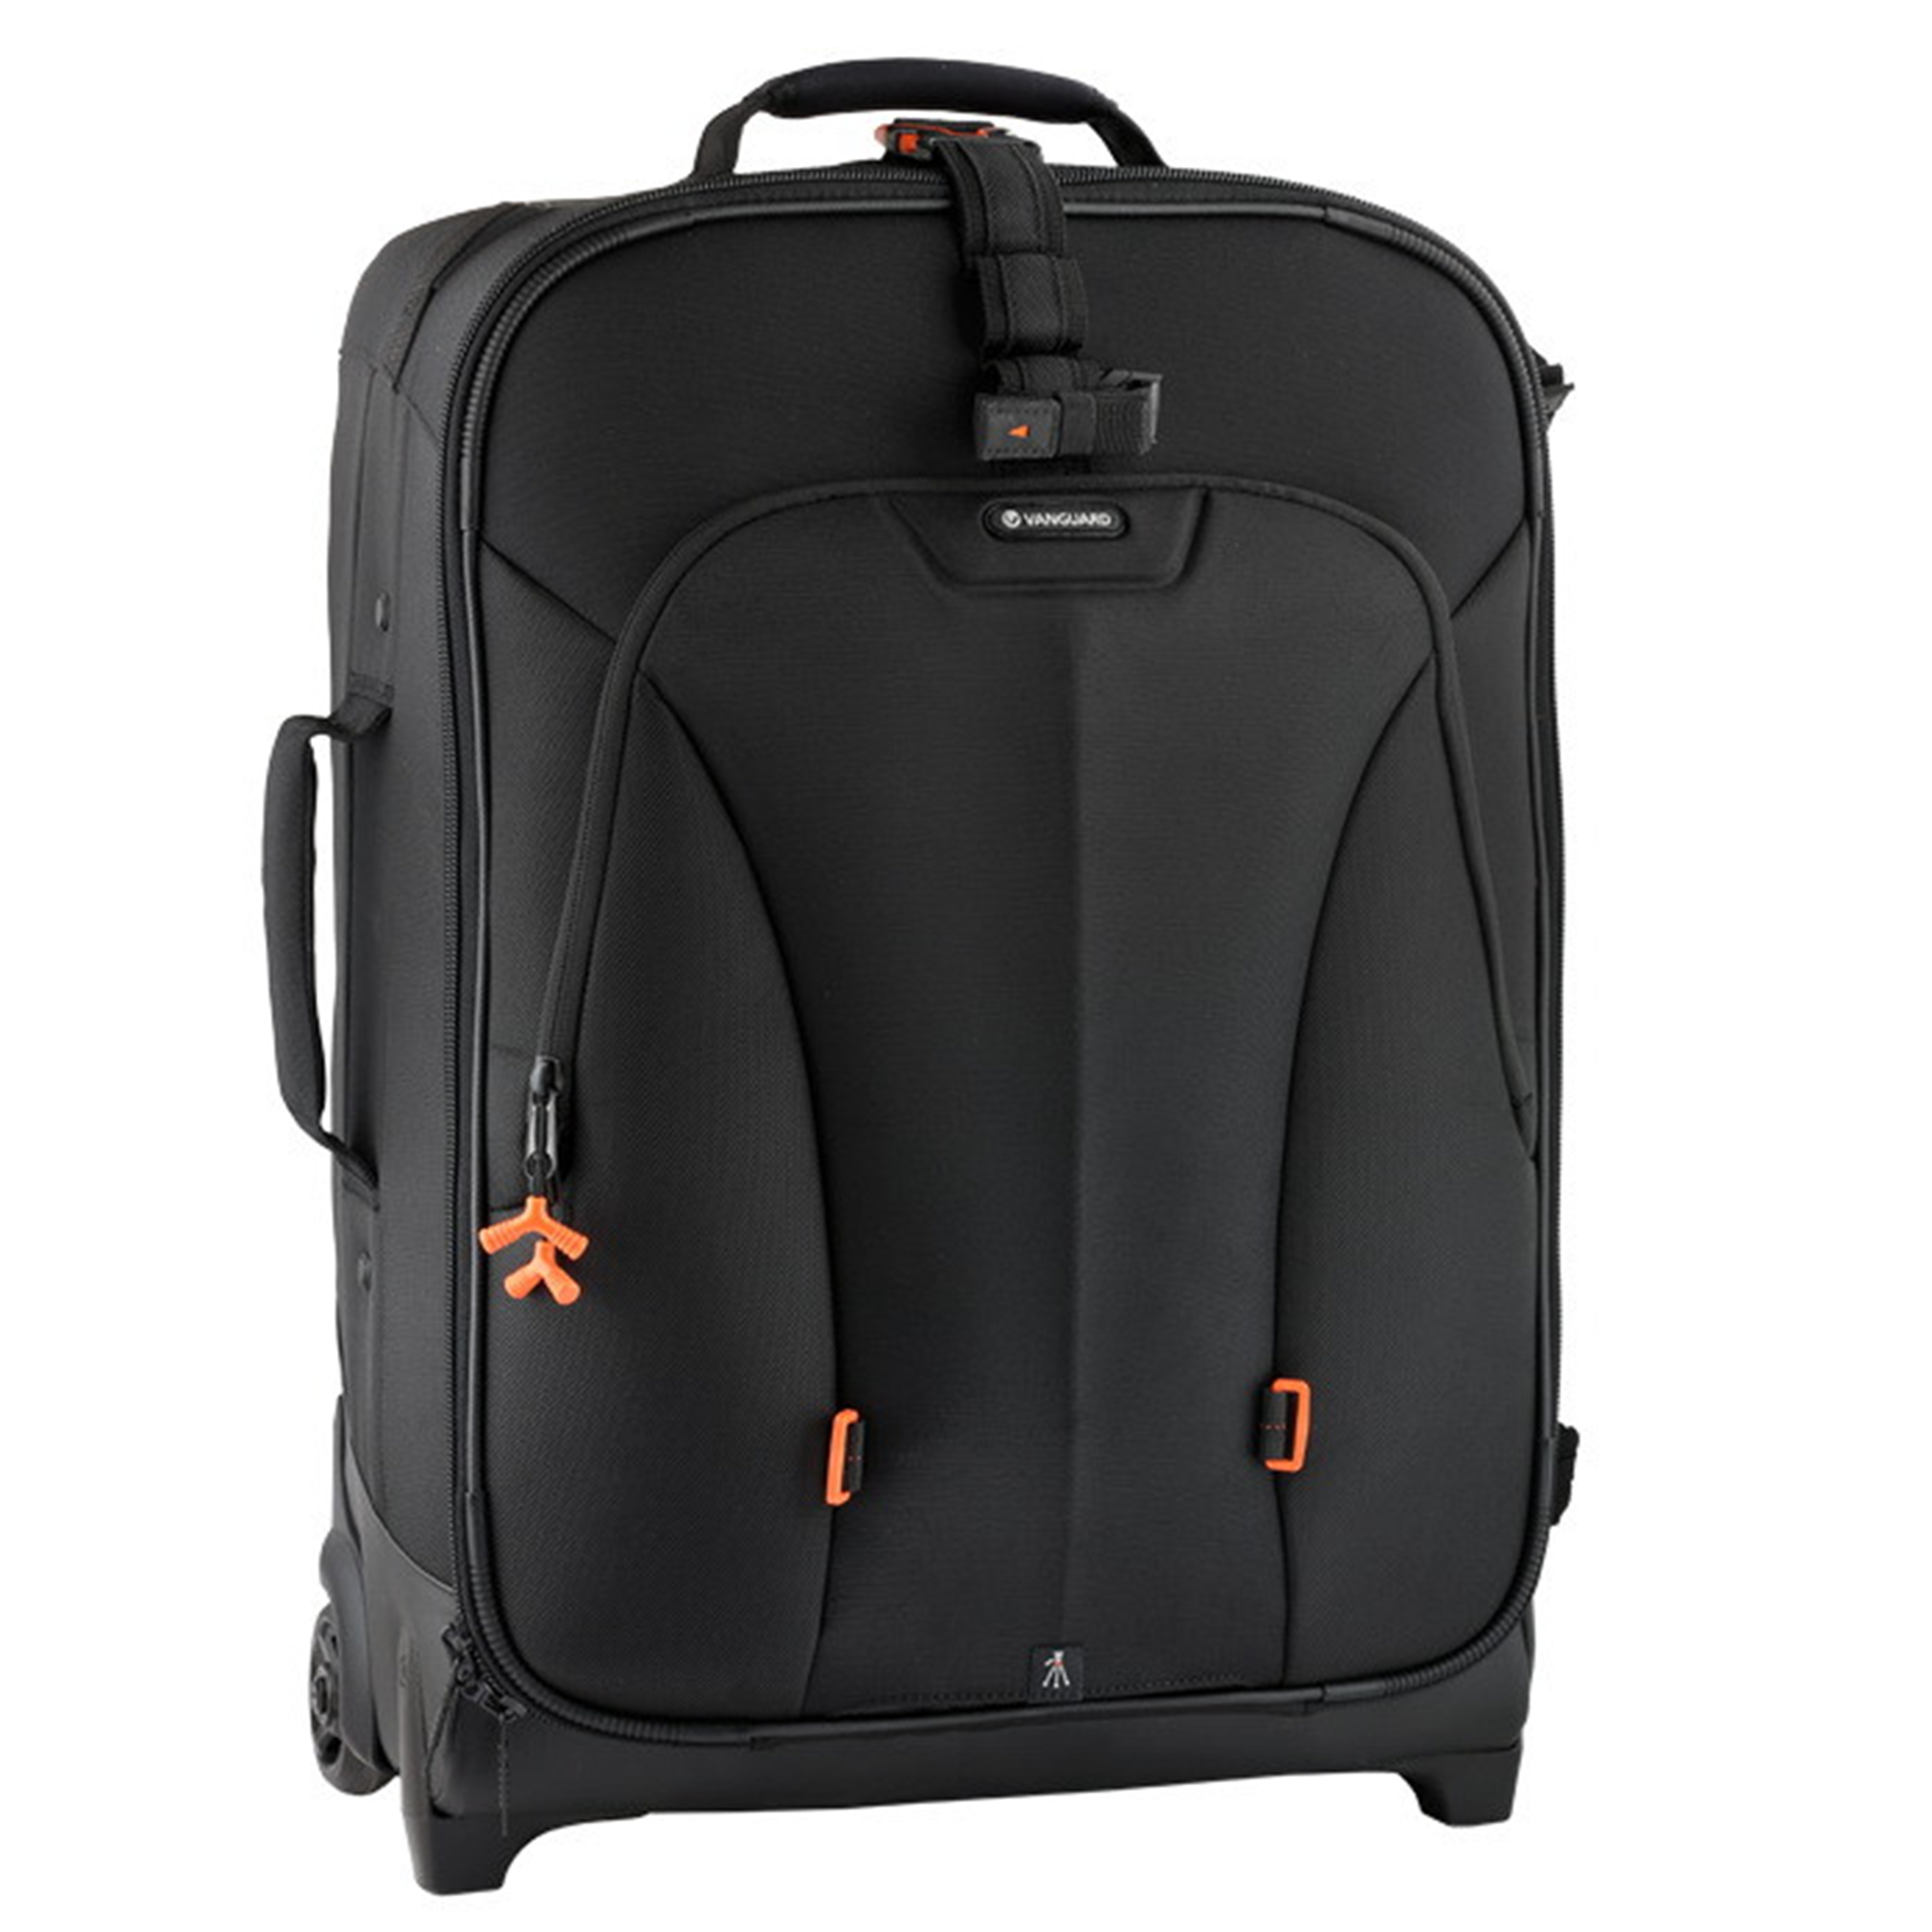 Vanguard XCENIOR 62T Bag